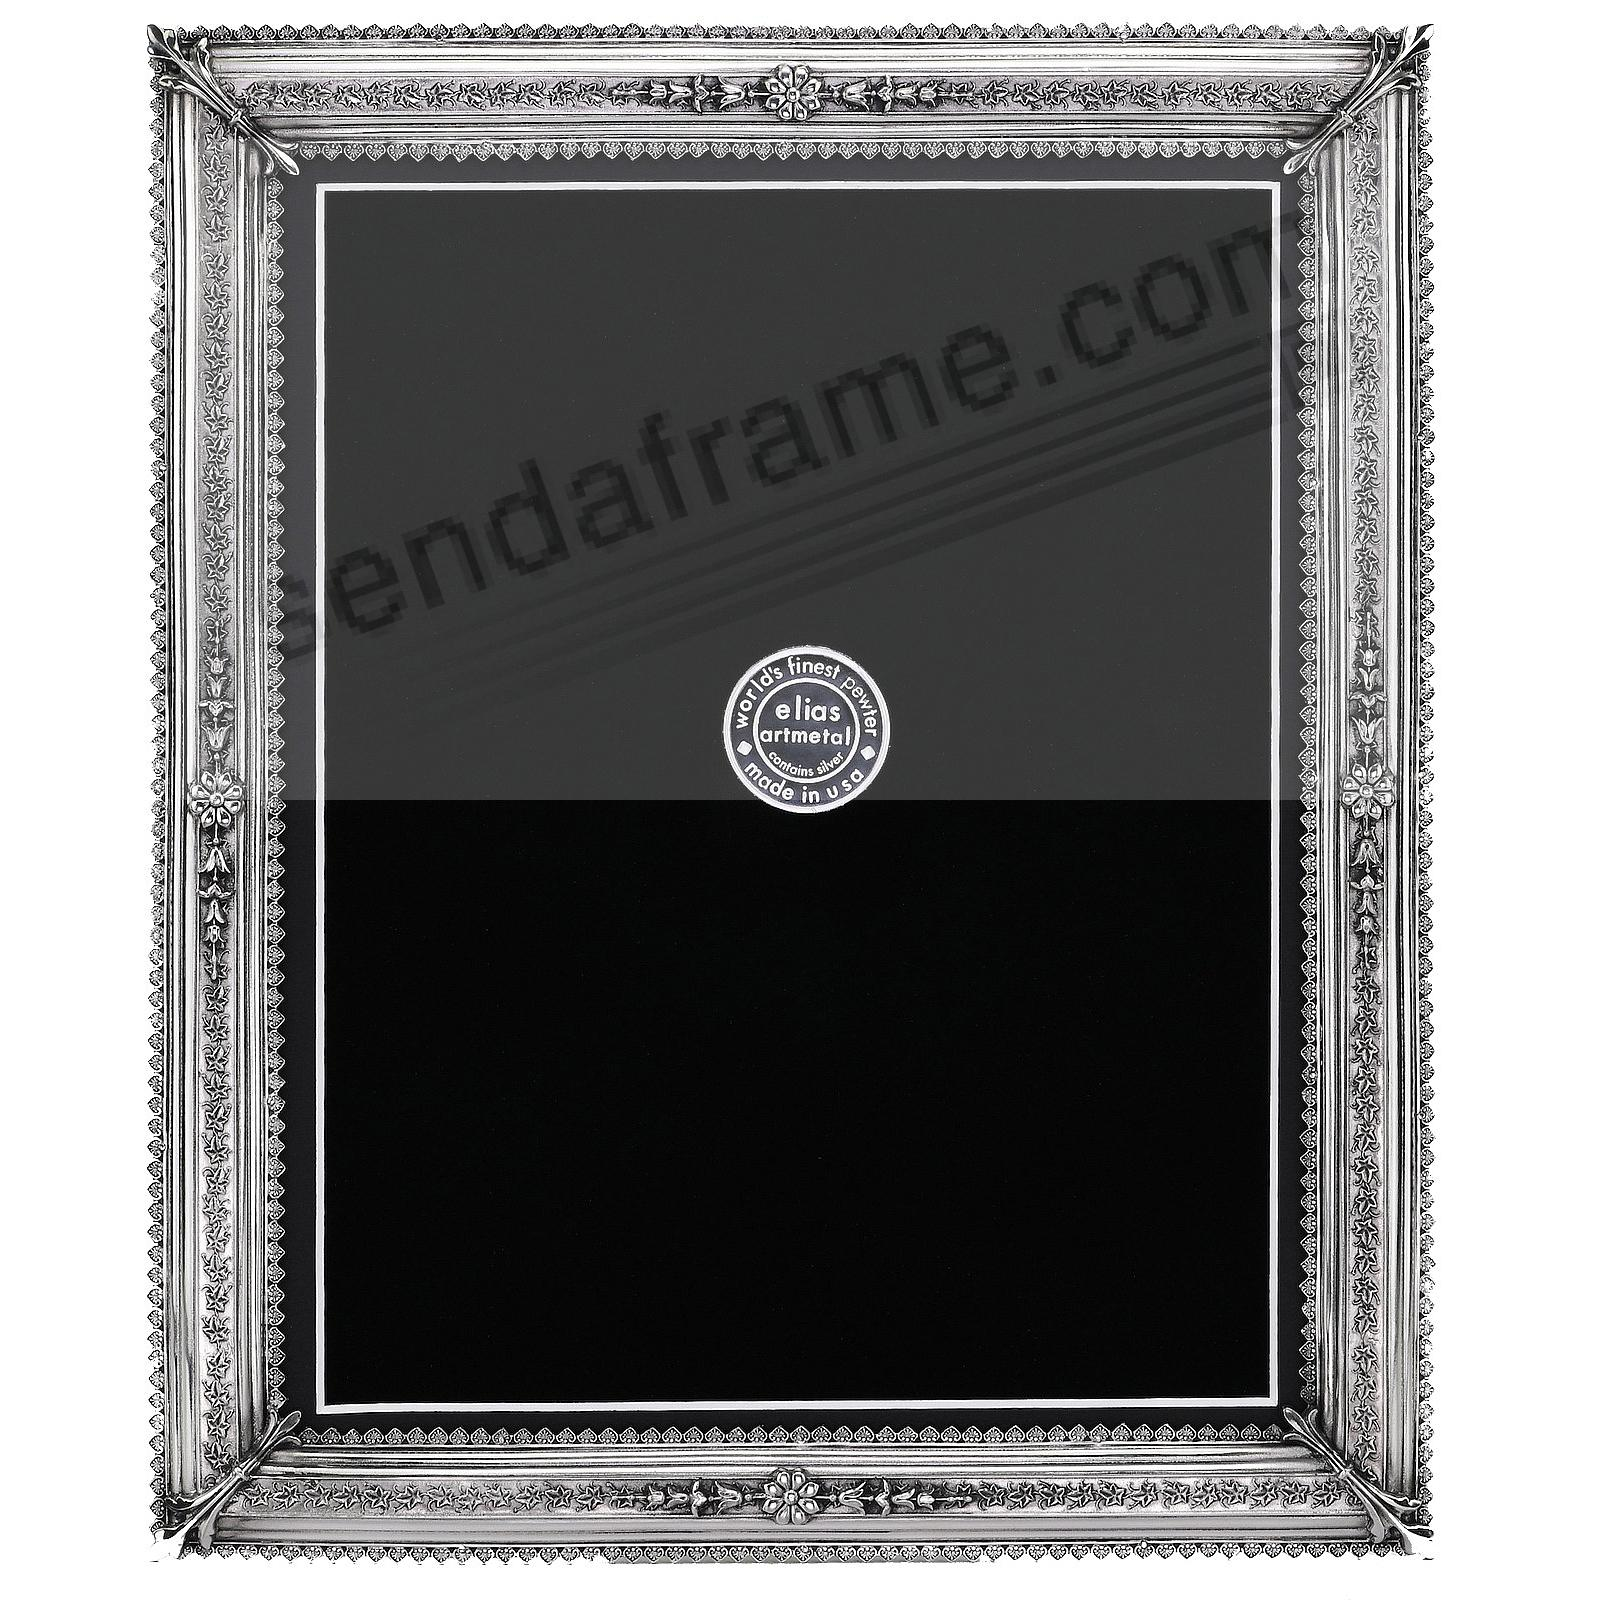 ROYALE fine silvered Pewter 8x10/7x9 frame by Elias Artmetal® in fine silvered pewter